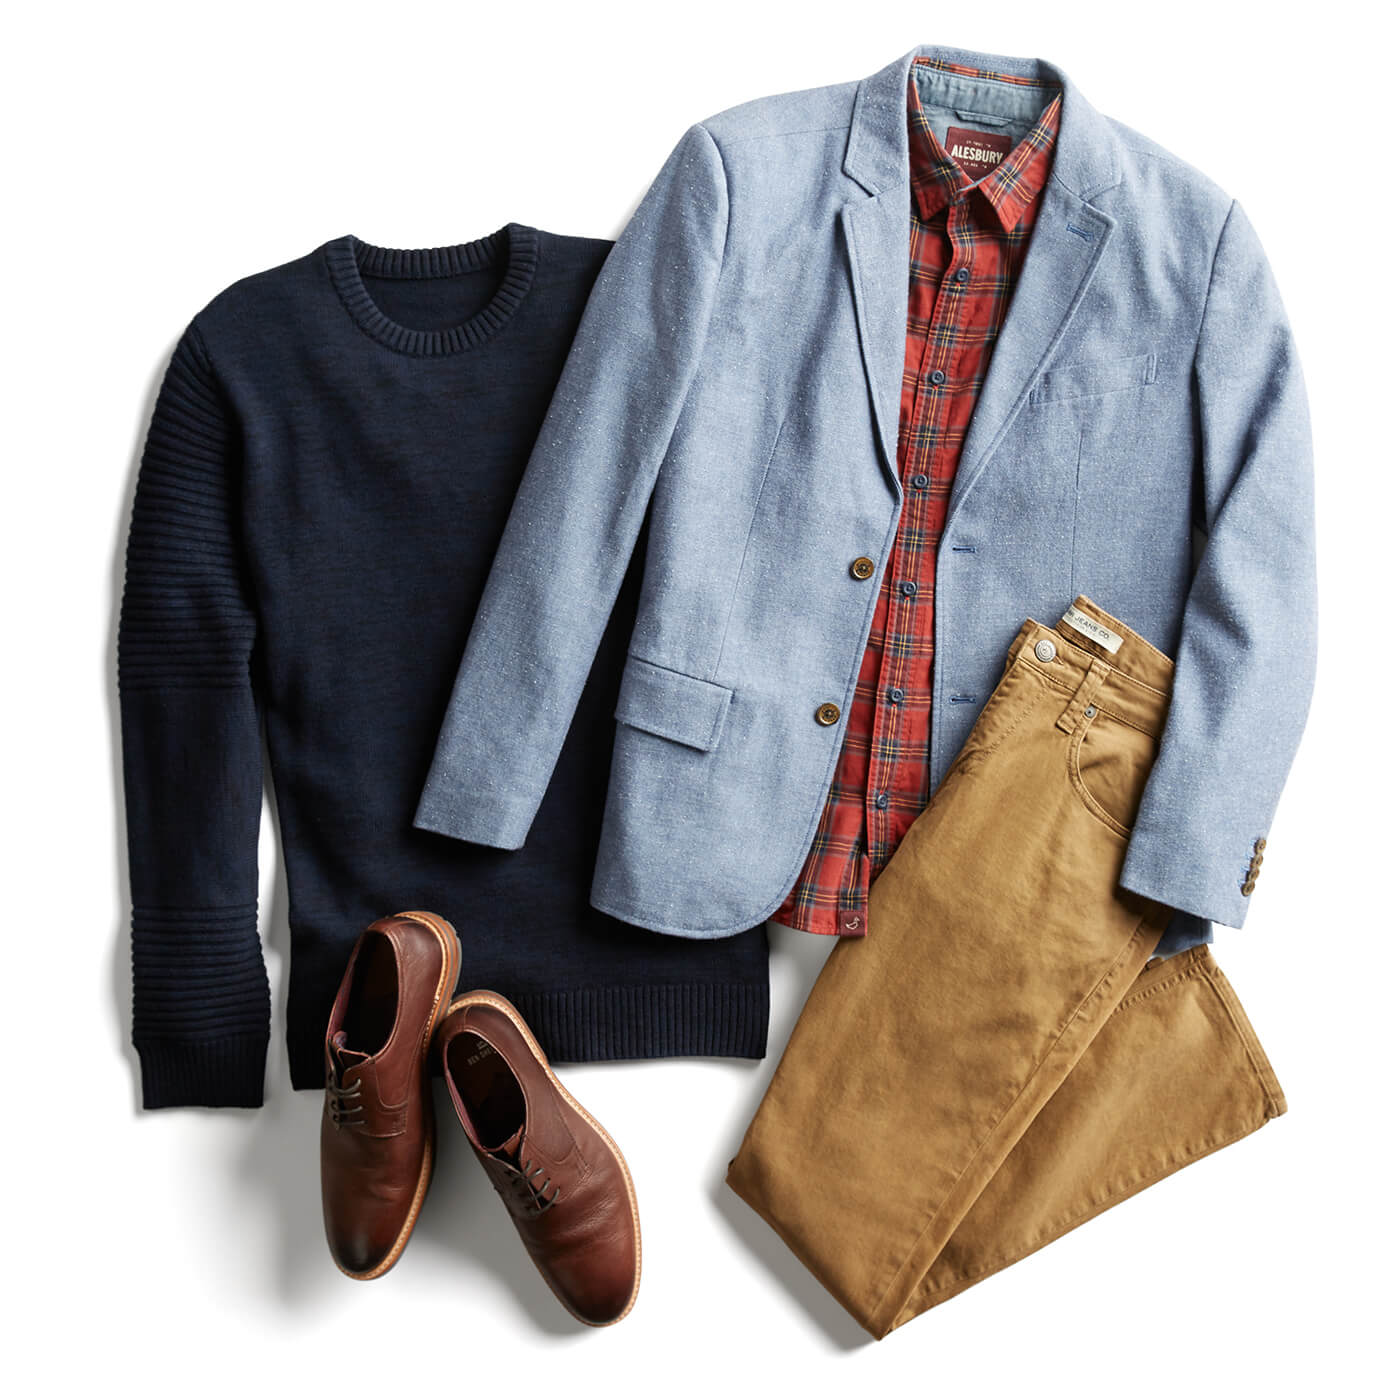 Men's Business Casual Outfits